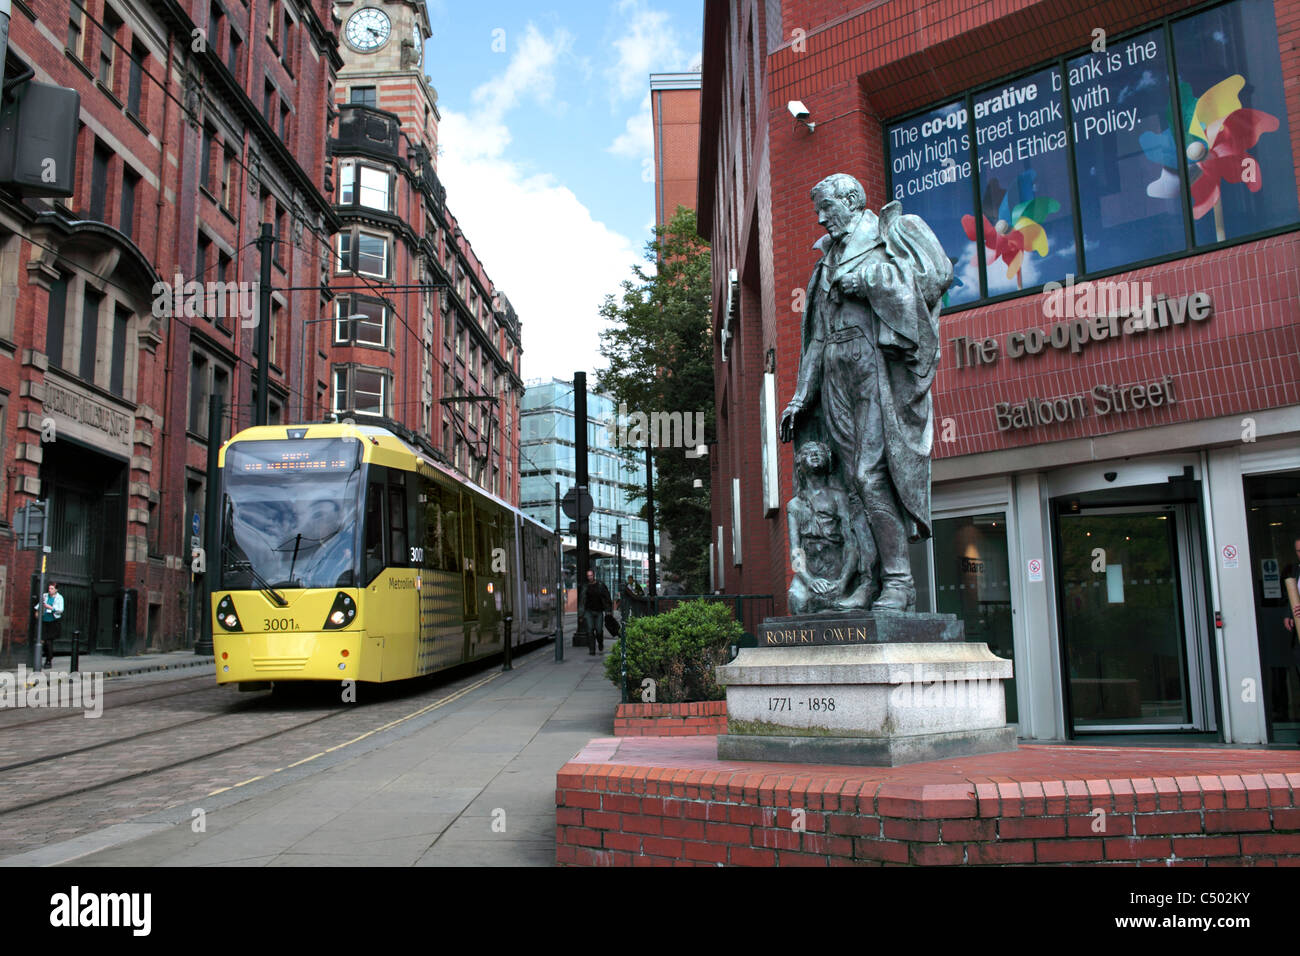 A tram passing a statue of Robert Owen outside the Co-op Bank on Balloon Street, Manchester. - Stock Image